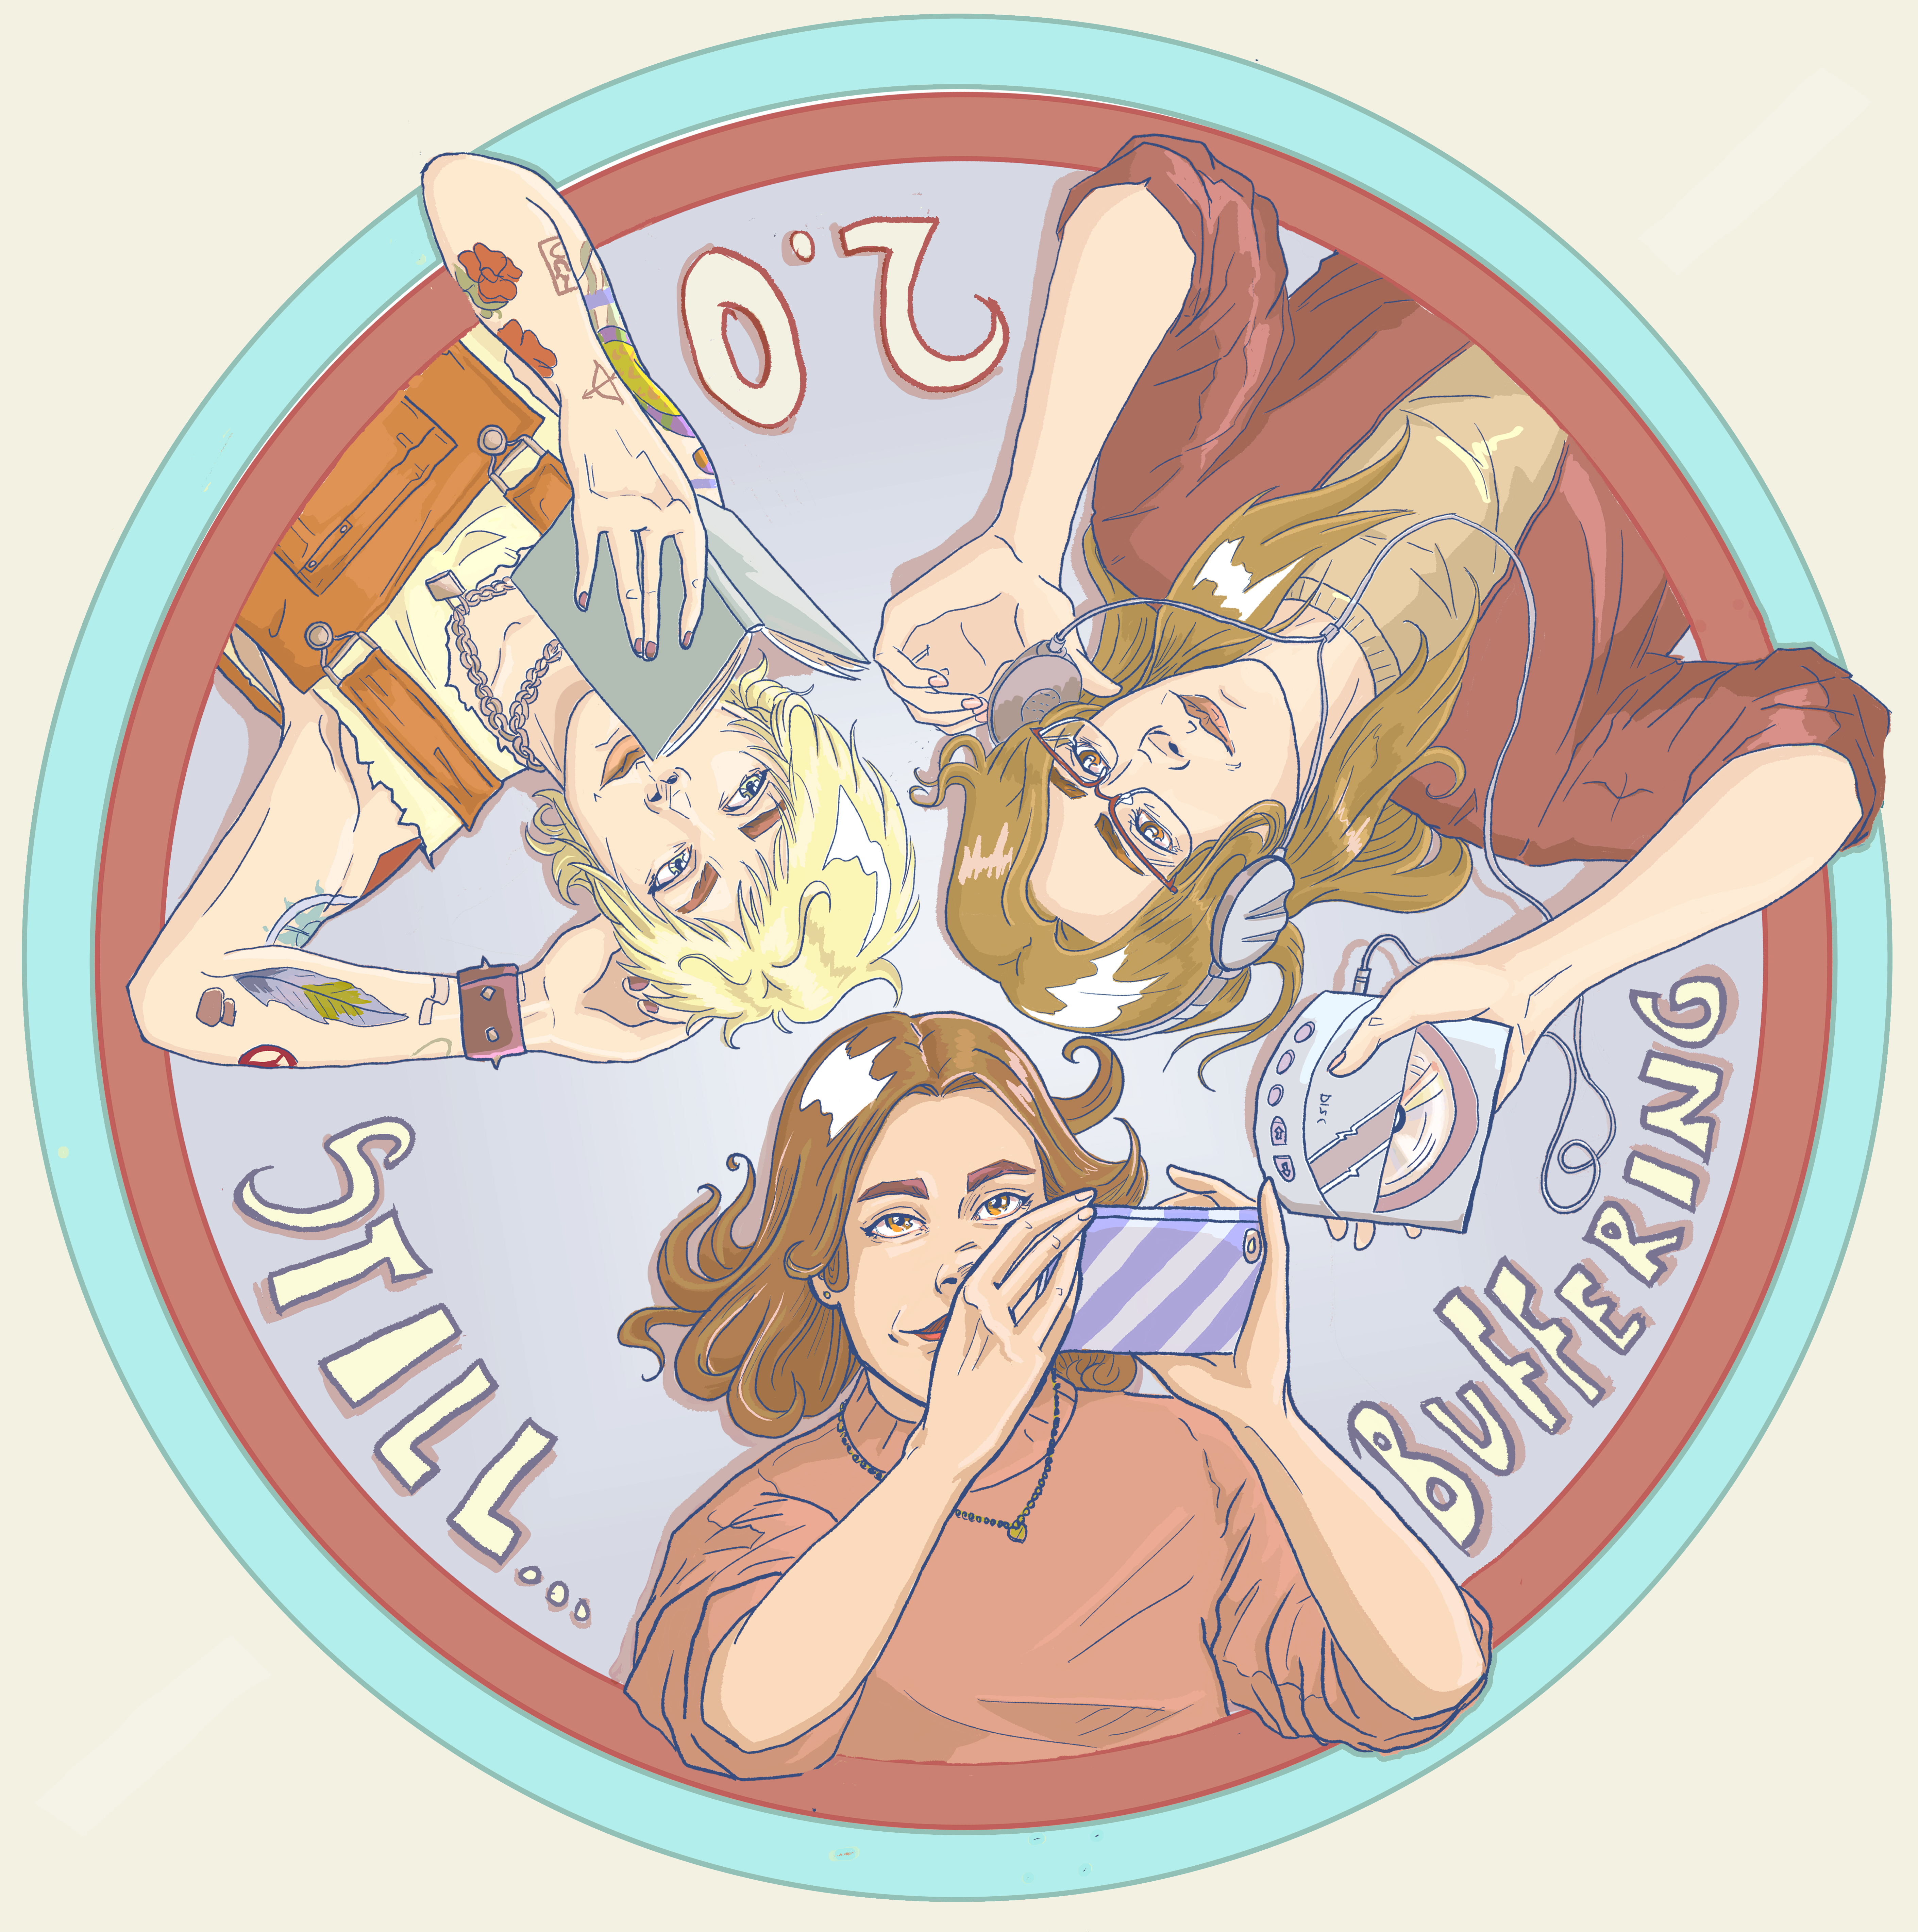 An illustration of Teylor Smirl, Rileigh Smirl, and Sydnee Mcelroy lying on their backs inside a circle. Teylor is reading a book. Rileigh is looking at her phone. Sydnee is listening to a walkman. Between them it says Still... Buffering 2.0.